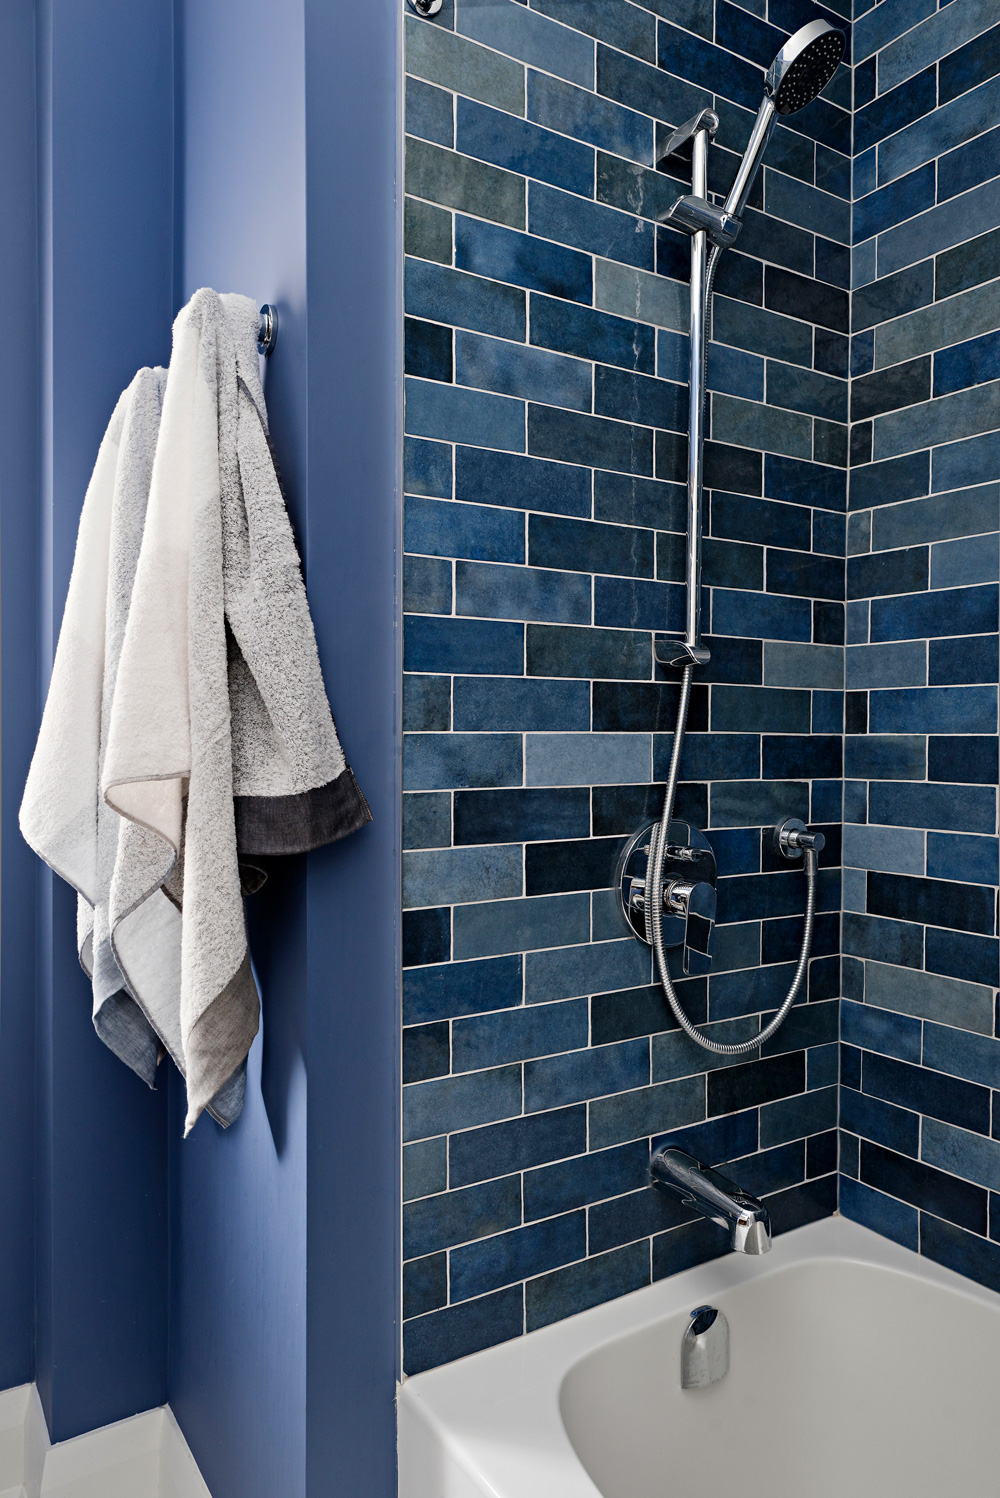 Blue accent tiles in family bathroom tub surround.